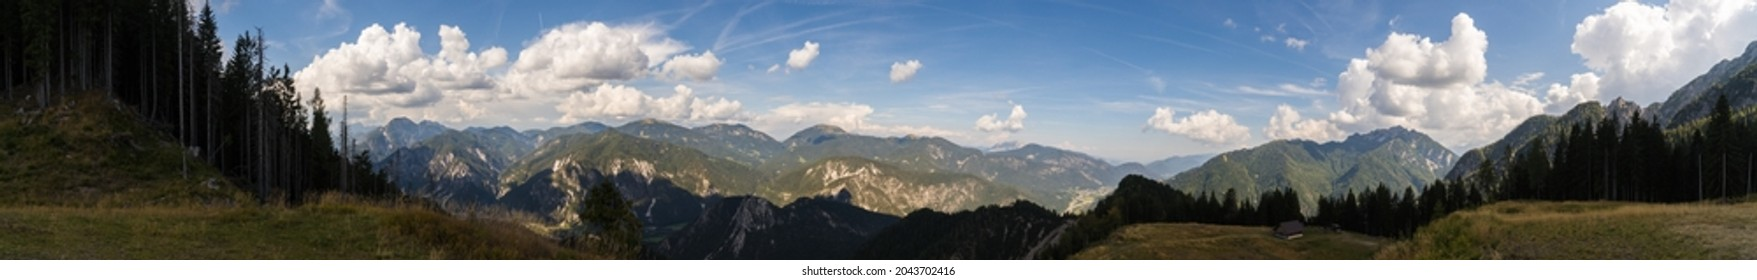 A panoramic view from the Zita Chapel nerby Valbruna over the Julian Alps, stretching along Monte Cocco, Oisternig, Monte Lussari and Cima del Cacciatore